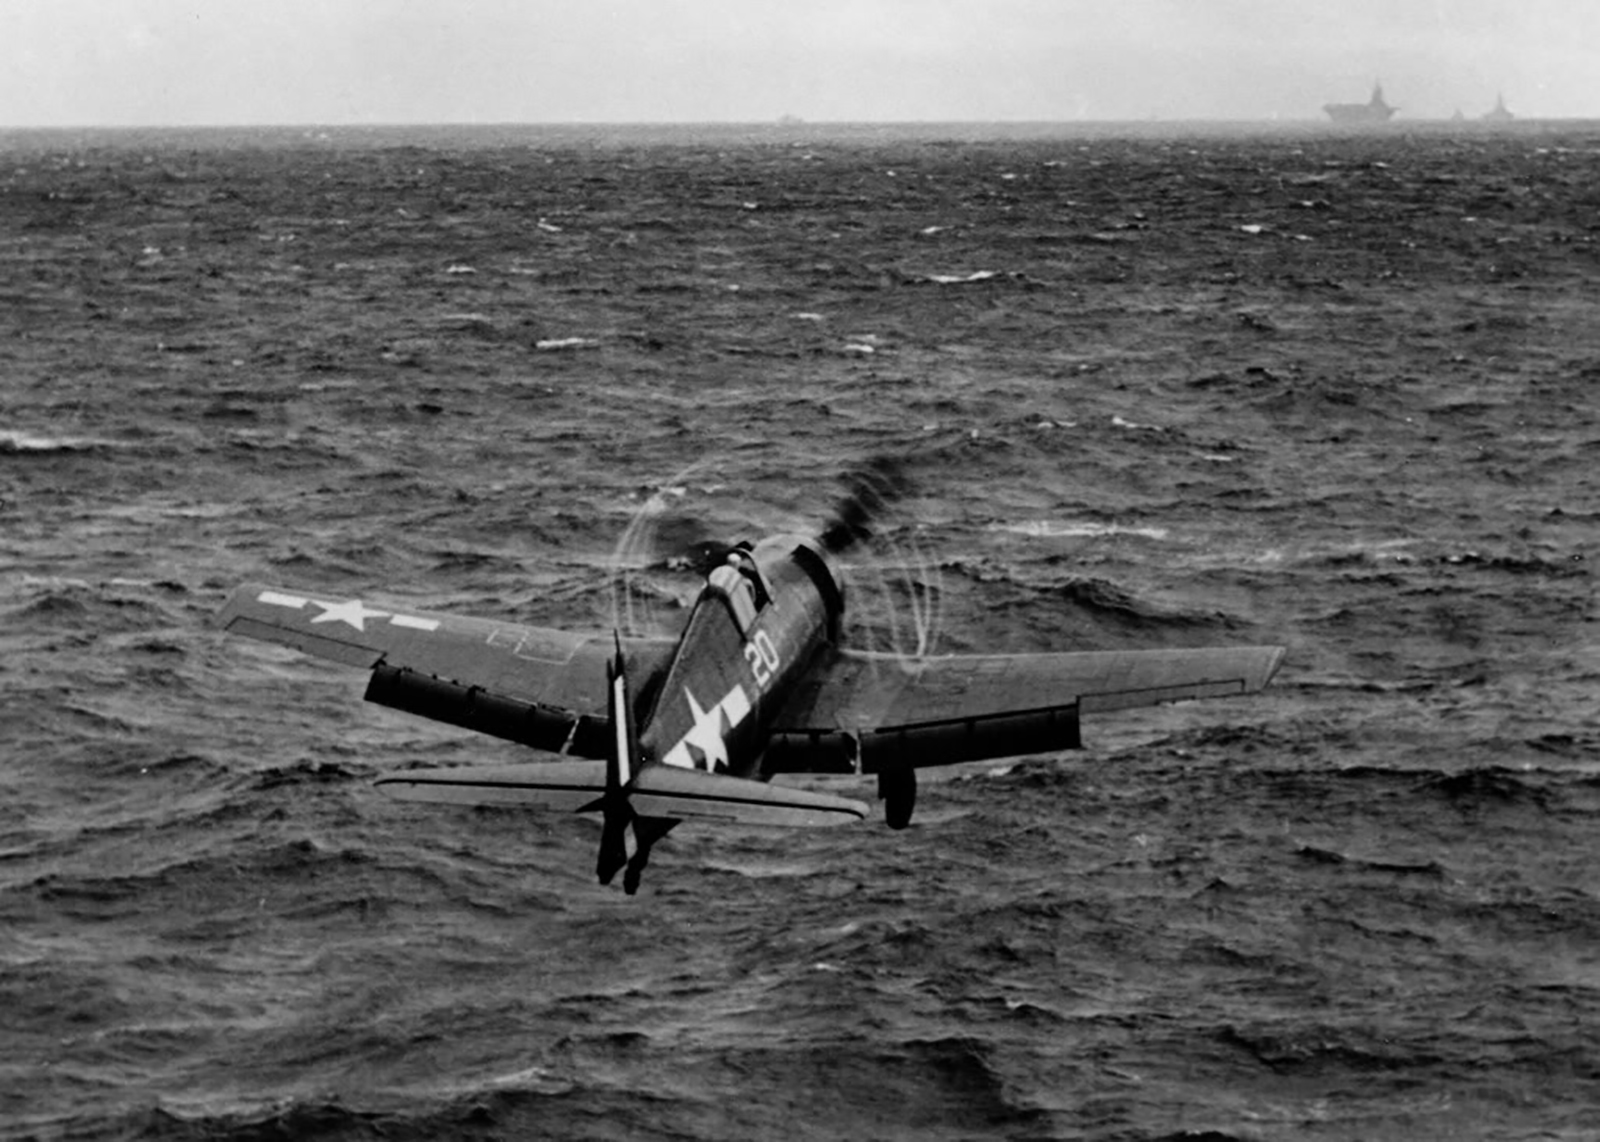 Grumman F6F 5 Hellcat VF 29 White 20 launched from CVL 28 USS Cabot 5th Feb 1945 01